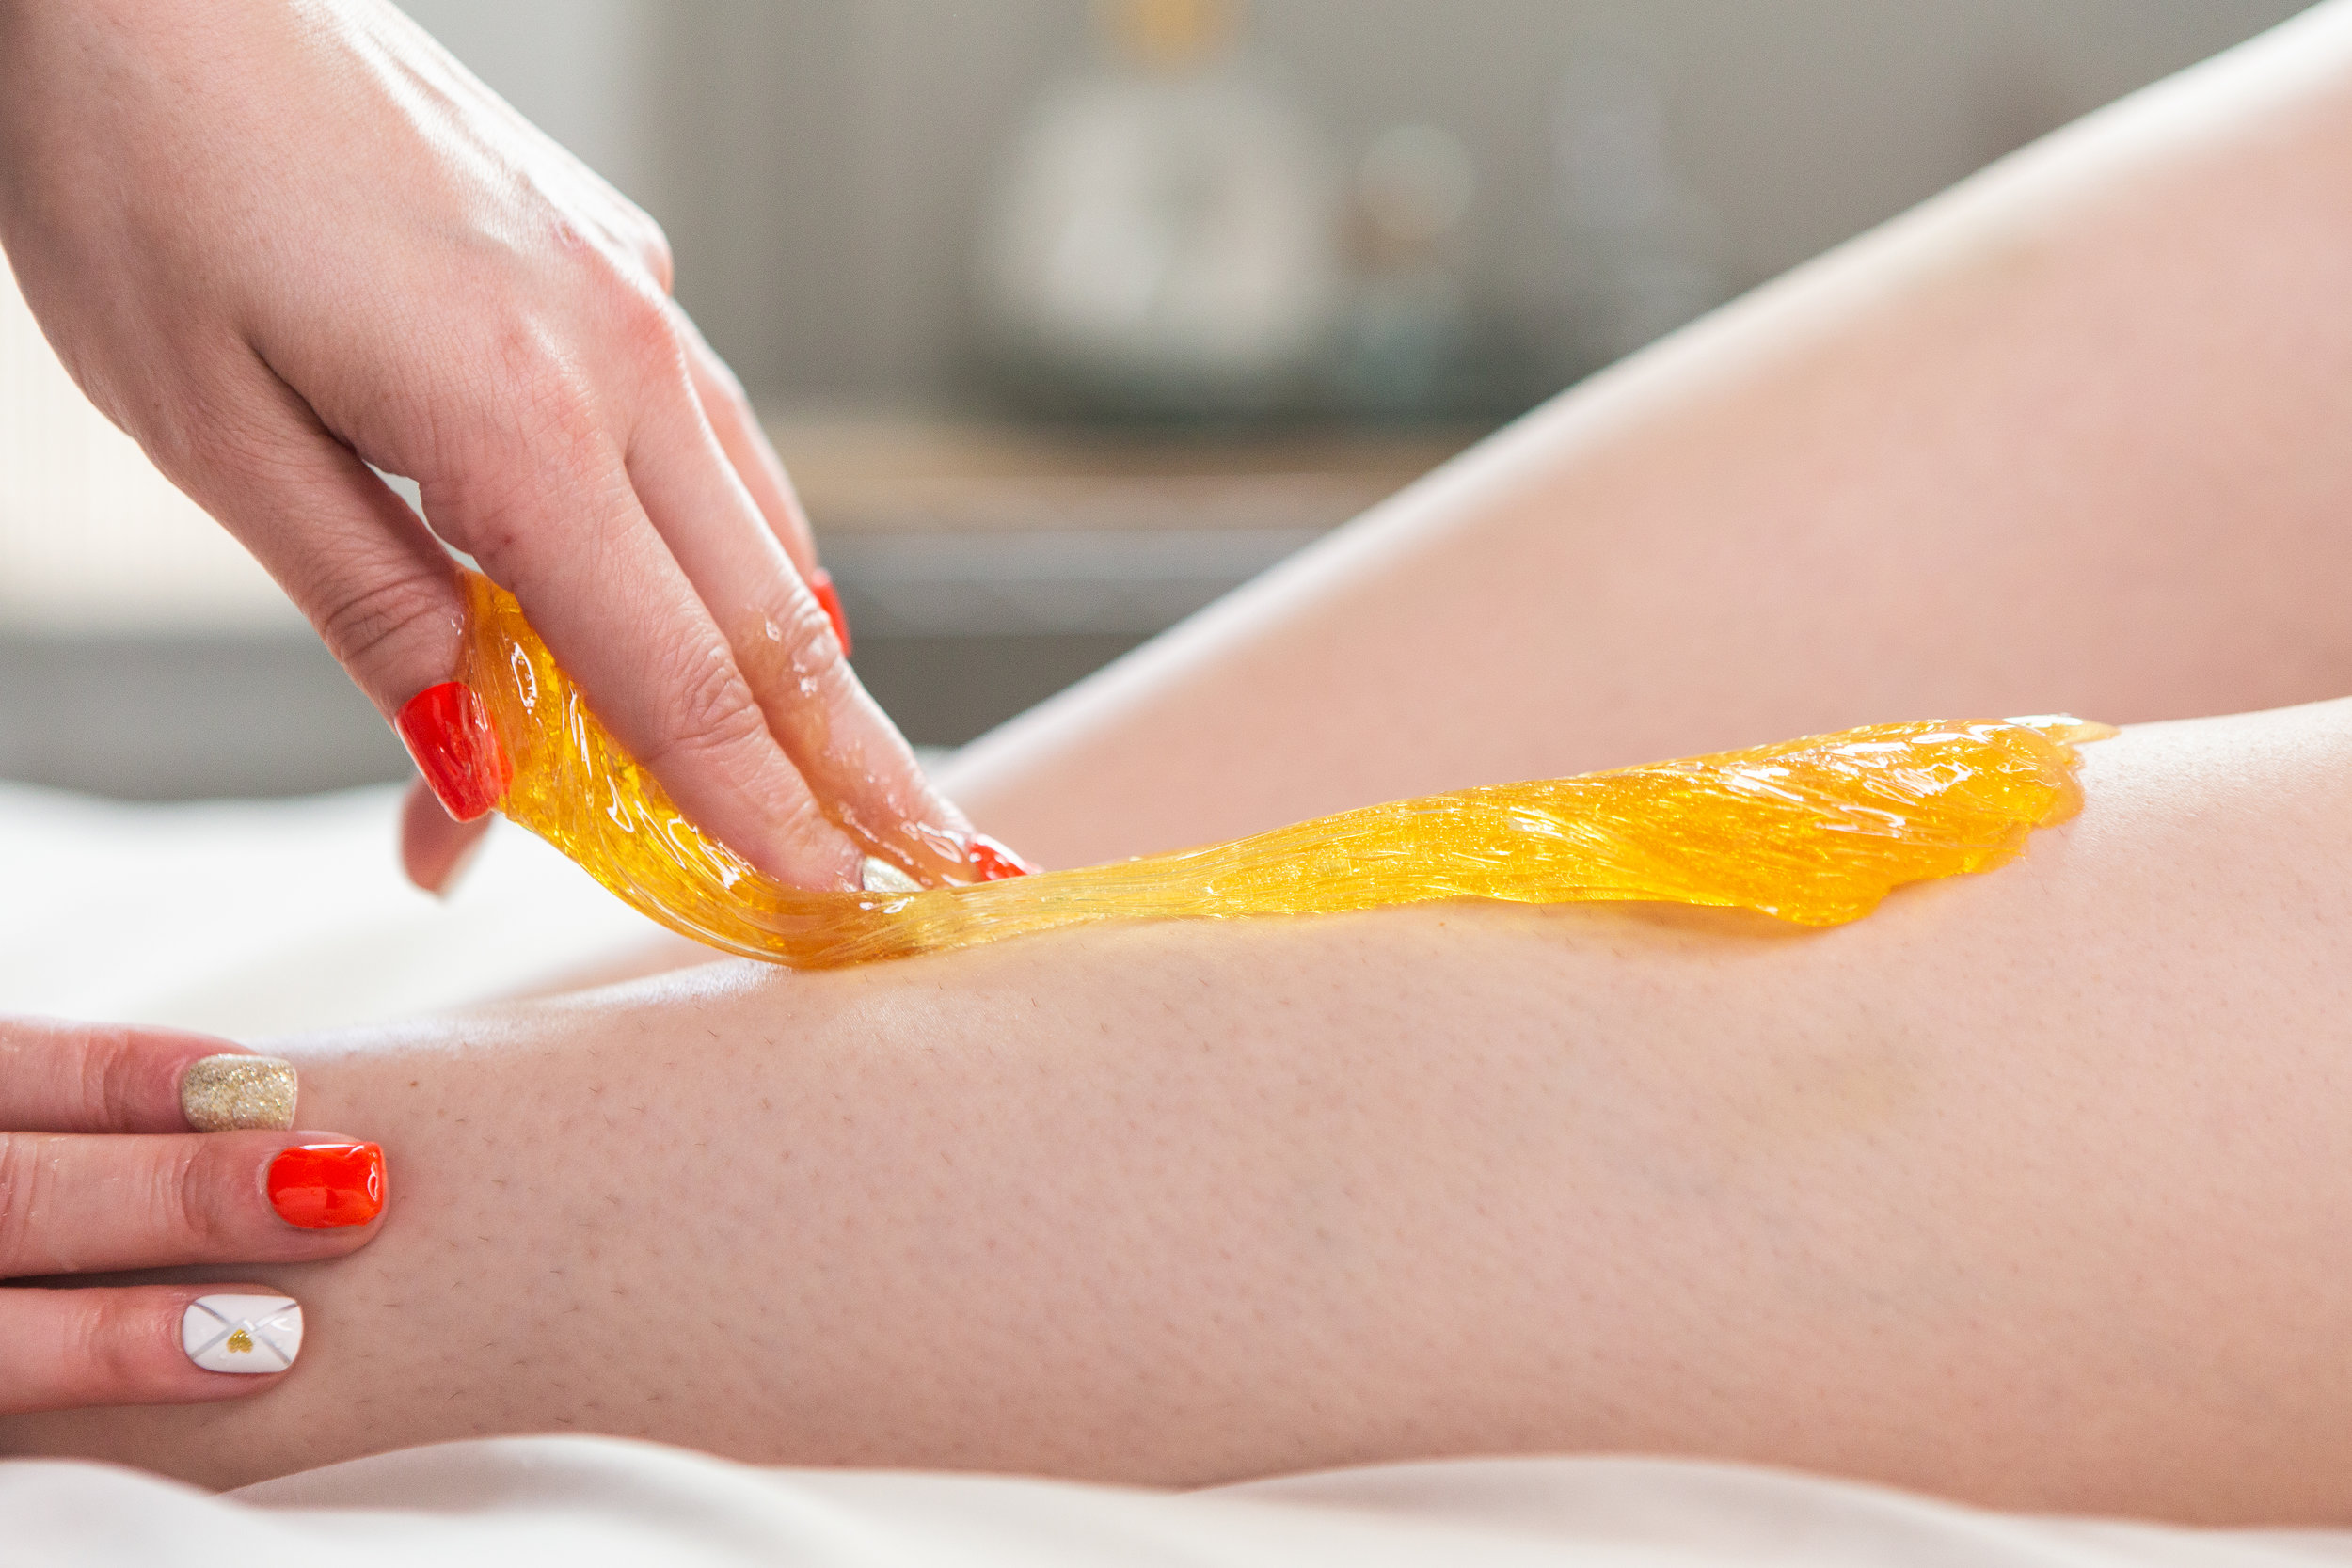 What is Sugar Hair Removal? - A technique that ancient middle-eastern ancestors would practice. The organic hair removal paste is derived from ingredients like sugar, water and lemon juice with results that can last up to 6 weeks.How It Works: A warm thick mixture is applied first opposite the direction of hair growth and is then removed in the direction of hair growth. Large amounts of hair can be taken off at the same time and areas can be finished faster than wax. This treatment is less painful and less damaging than wax.Benefits: Most people find this less painful than waxing.